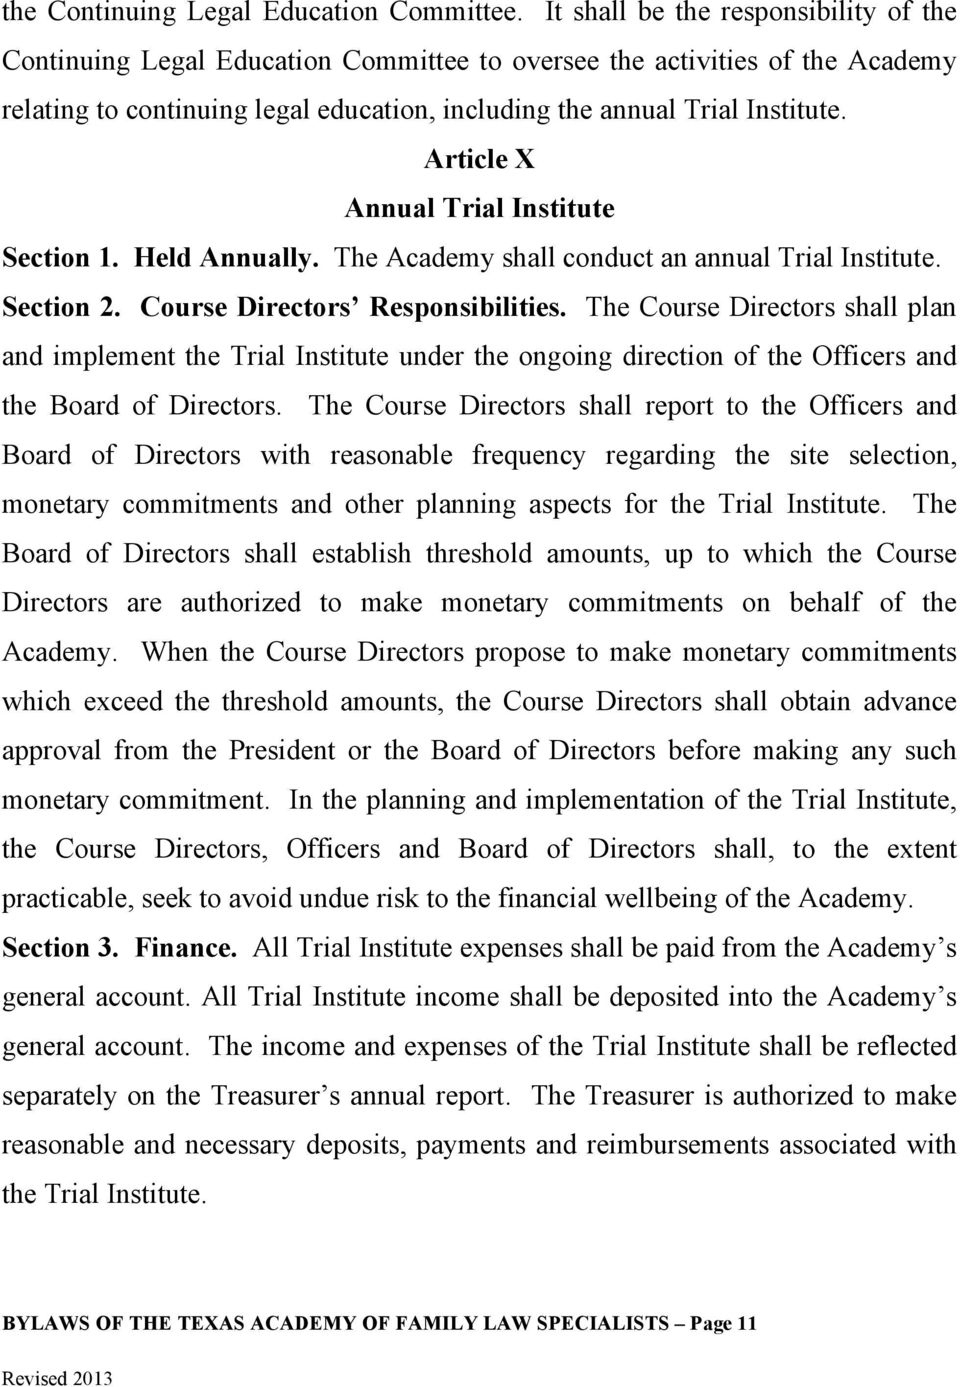 Article X Annual Trial Institute Section 1. Held Annually. The Academy shall conduct an annual Trial Institute. Section 2. Course Directors Responsibilities.